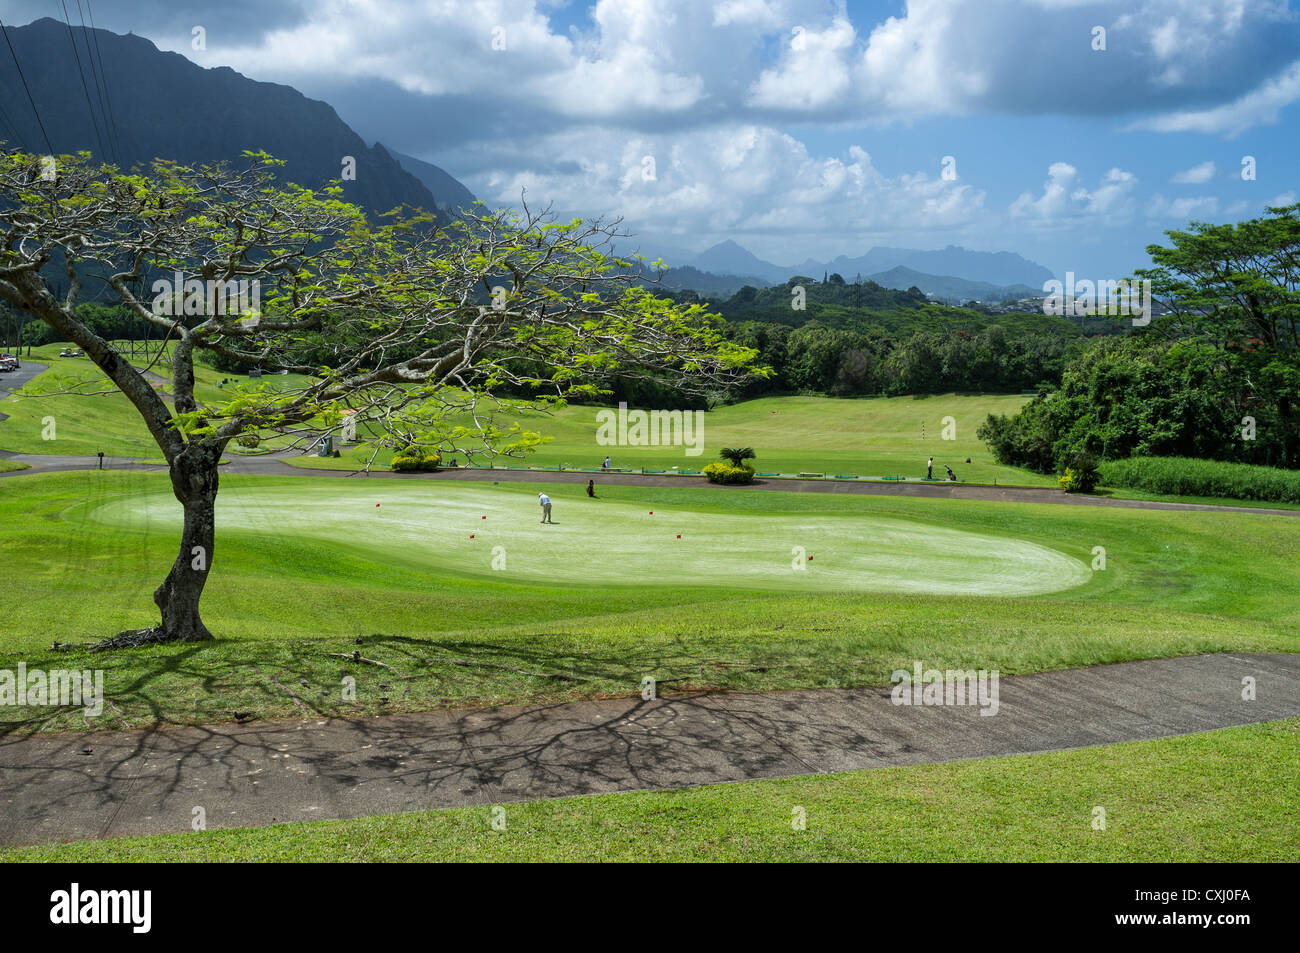 Putting green y driving range de Ko'olau Golf Club cerca de Ko'olau Gama en Kaneohe, Hawaii. Imagen De Stock